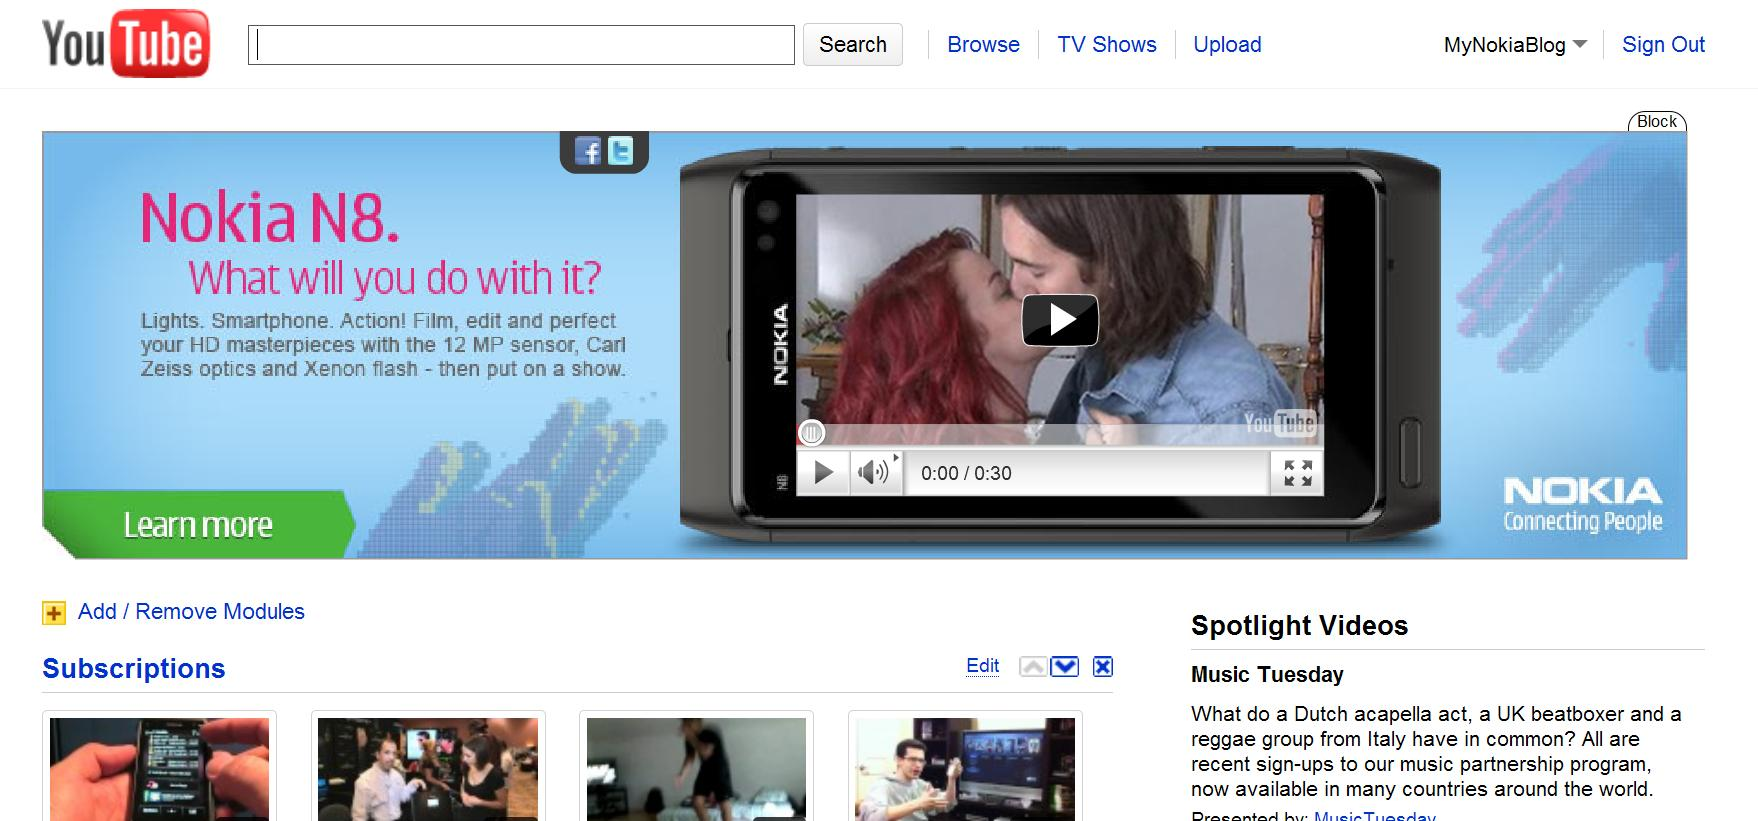 Big Nokia N8 ad on YouTube front page : My Nokia Blog - 200